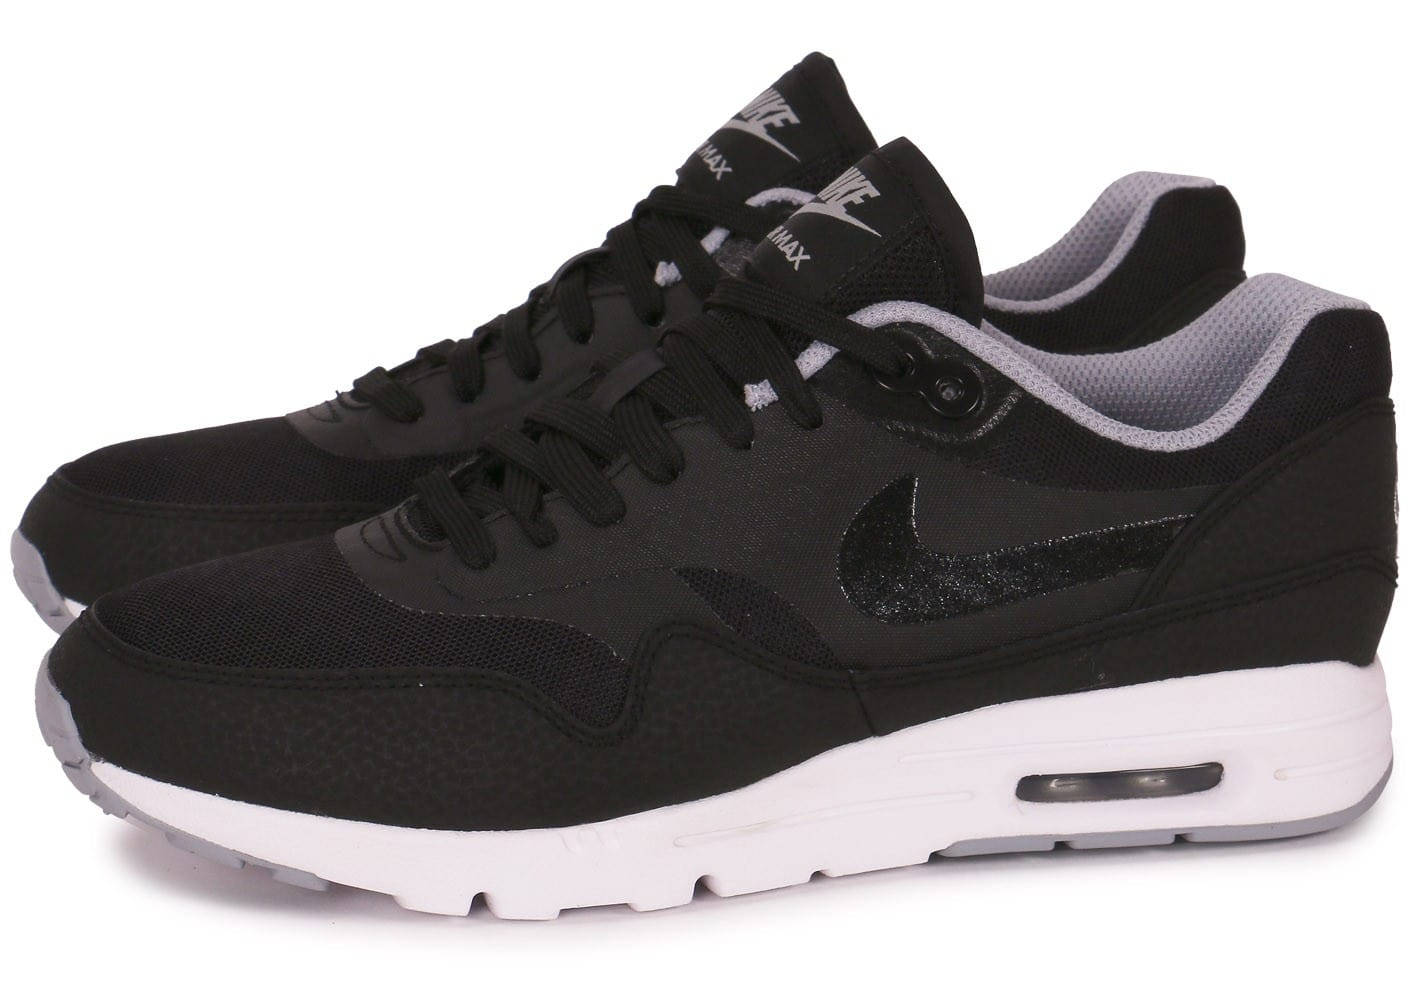 Chaussures Nike Air Max 1 noires Fashion homme